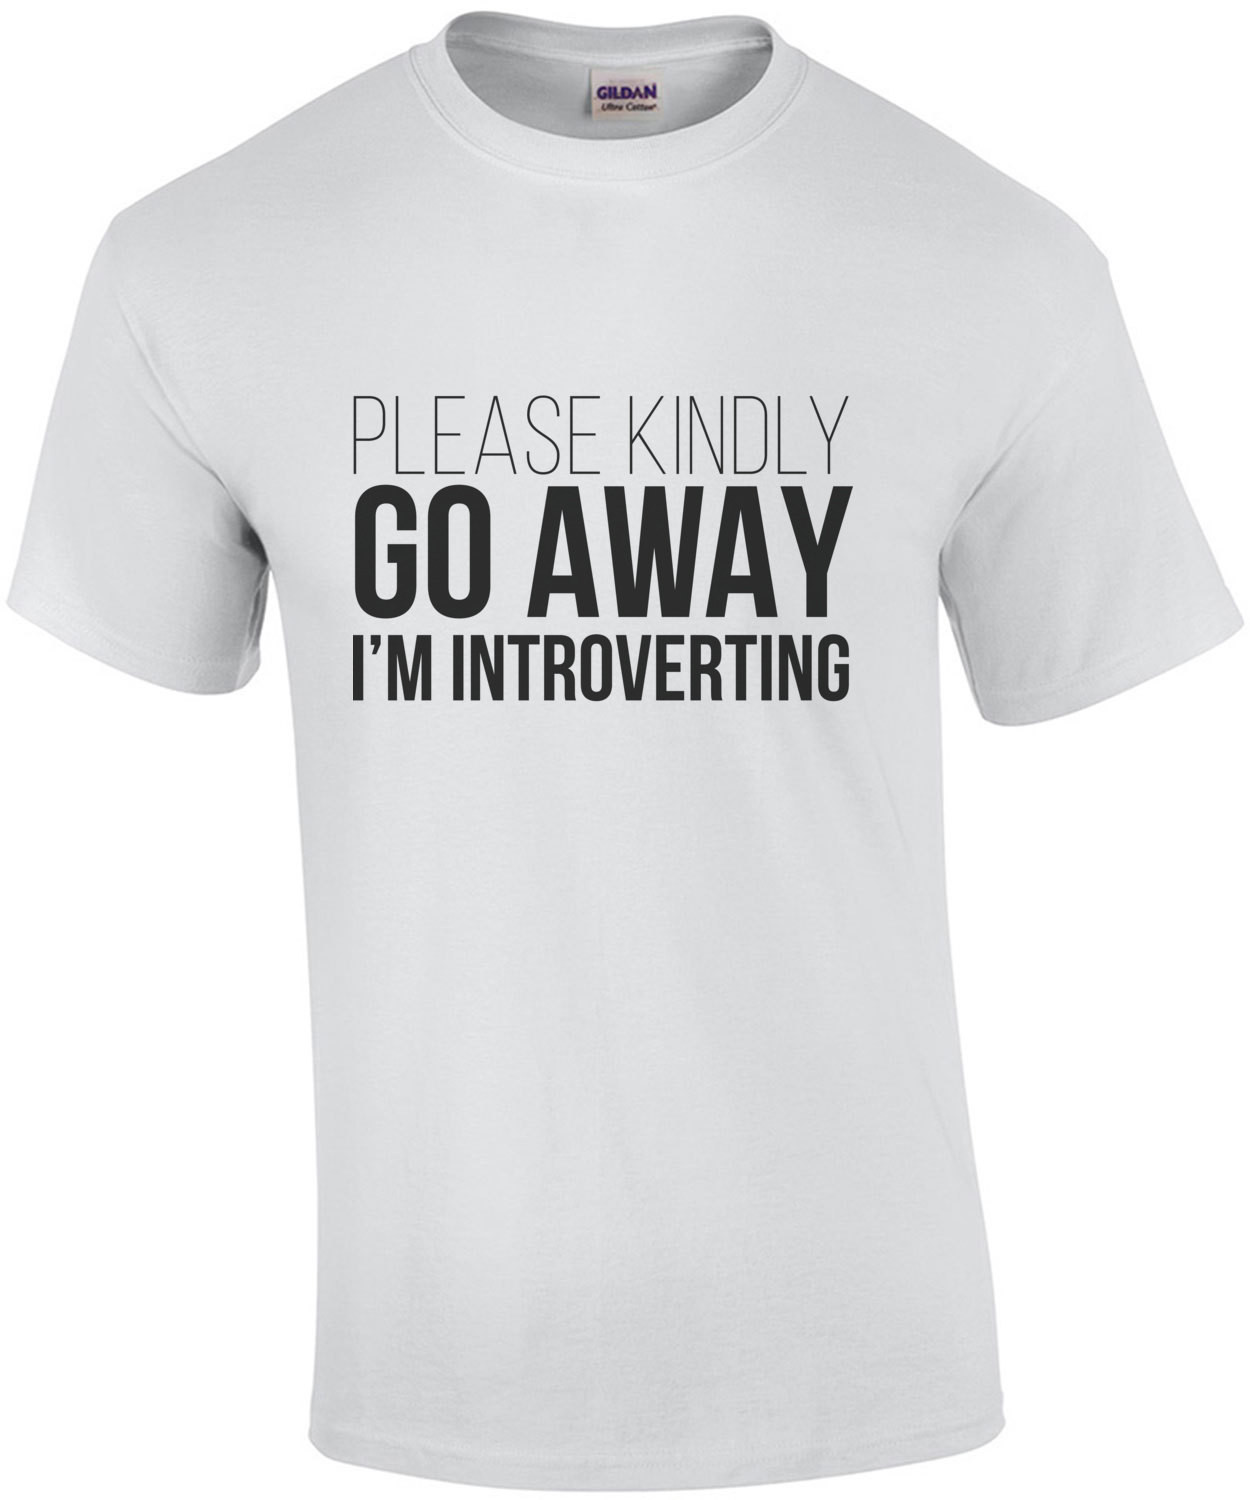 Please kindly go away - I'm introverting - Nerd T-Shirt